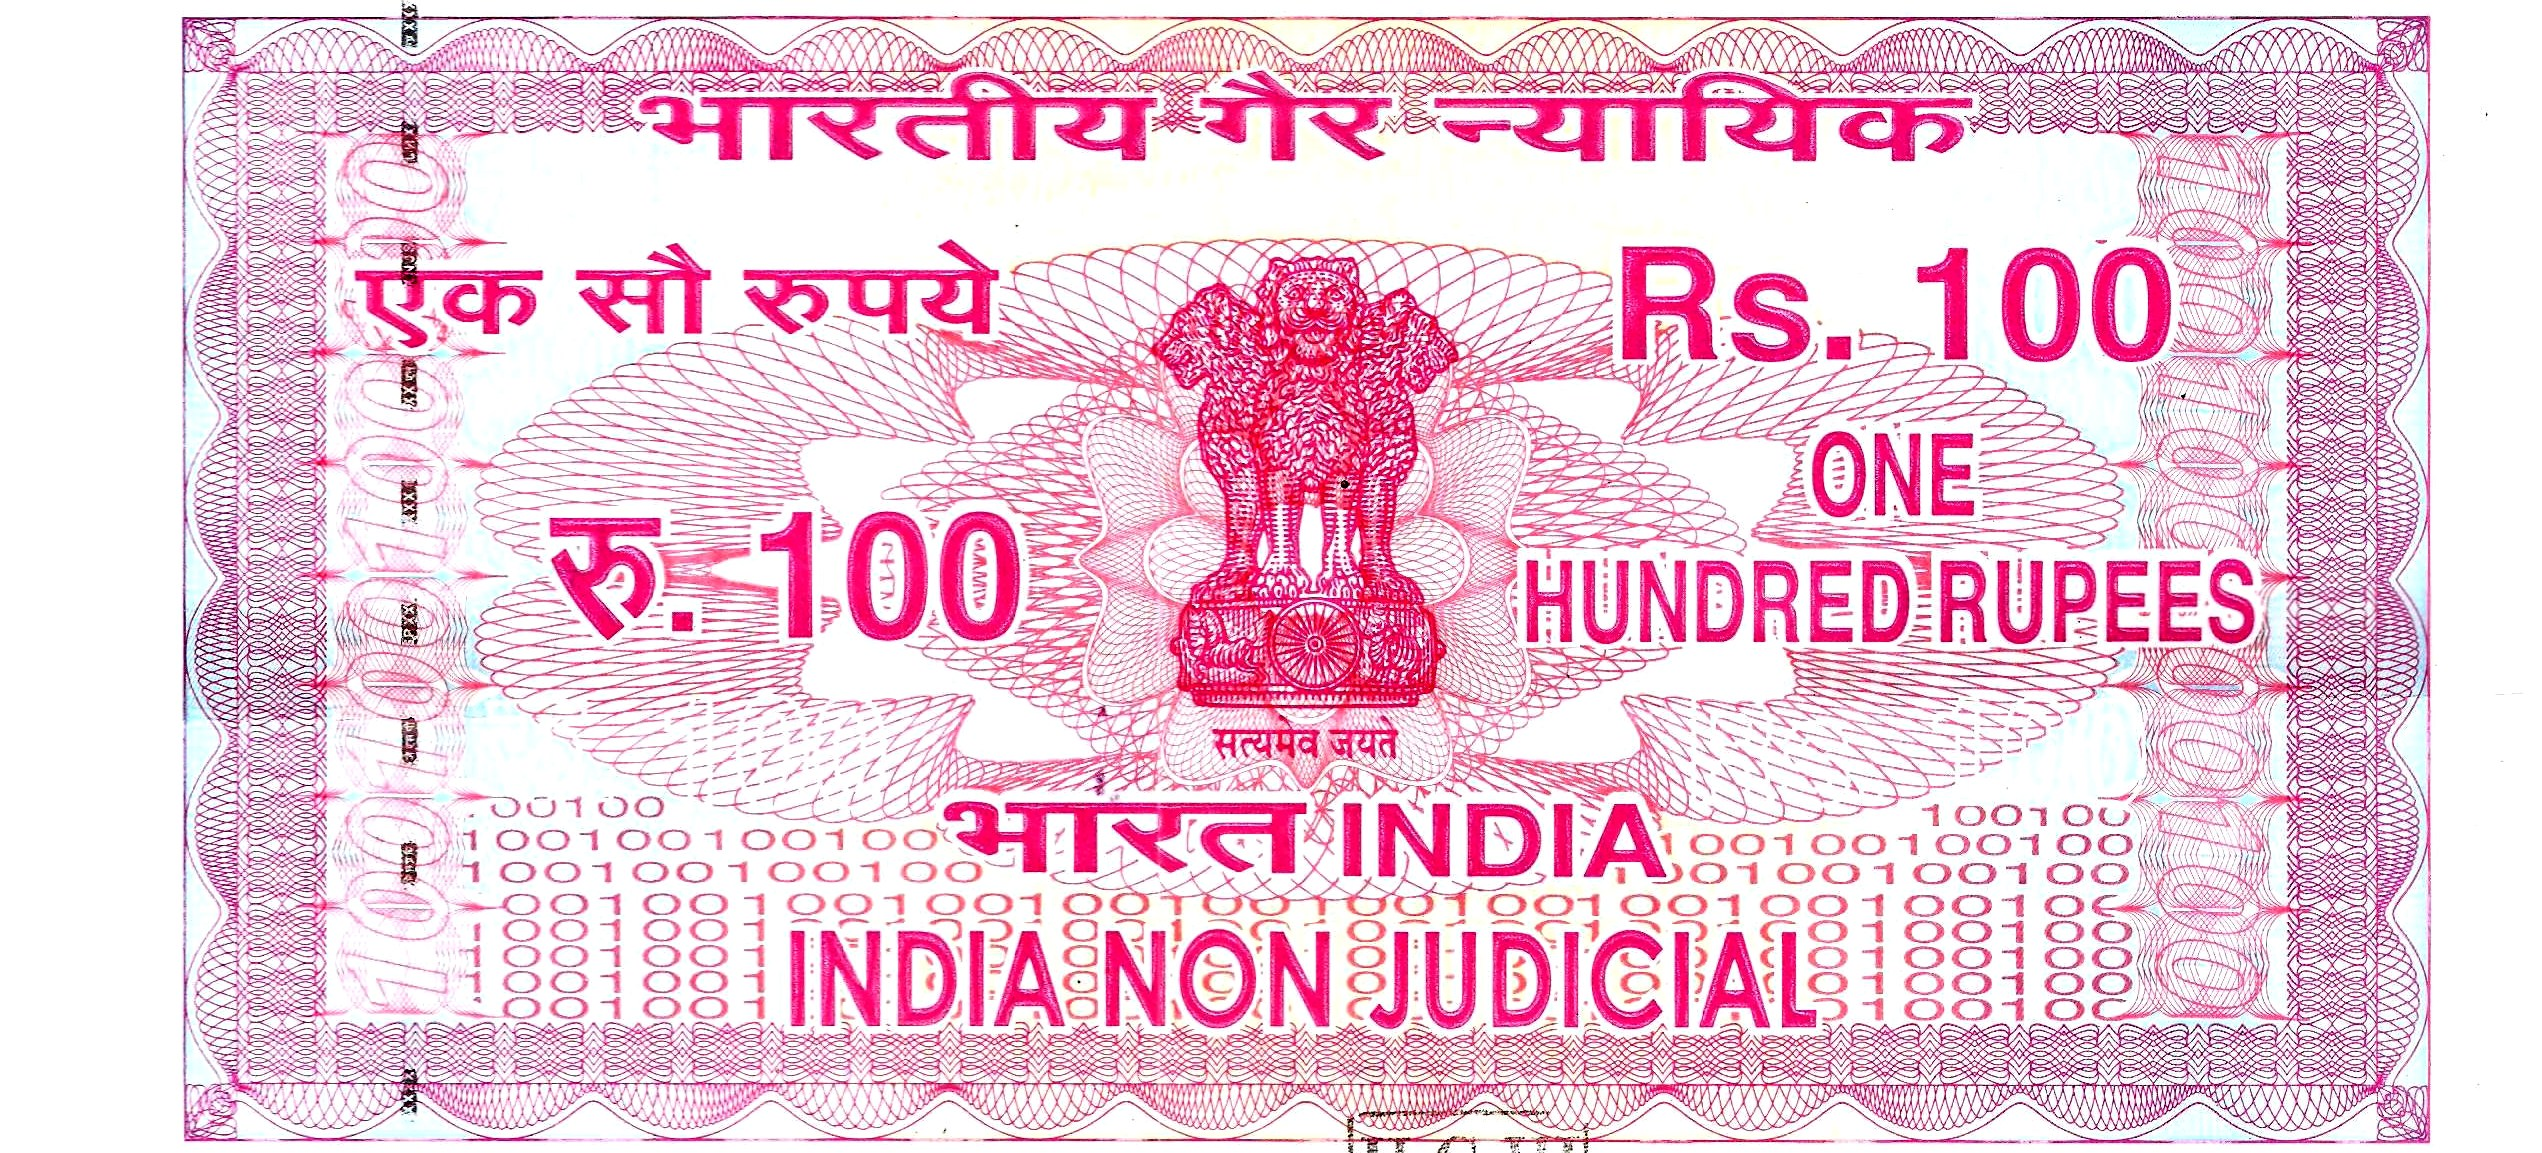 legal research papers india Online law library in india is the largest free online collection of laws and regulations on topics related to on family law,cyber law,constitution,consumer protection,insurance,entertainment laws,e-commerce and many more issues, the library is hailed as the most comprehensive place for legal research in india.